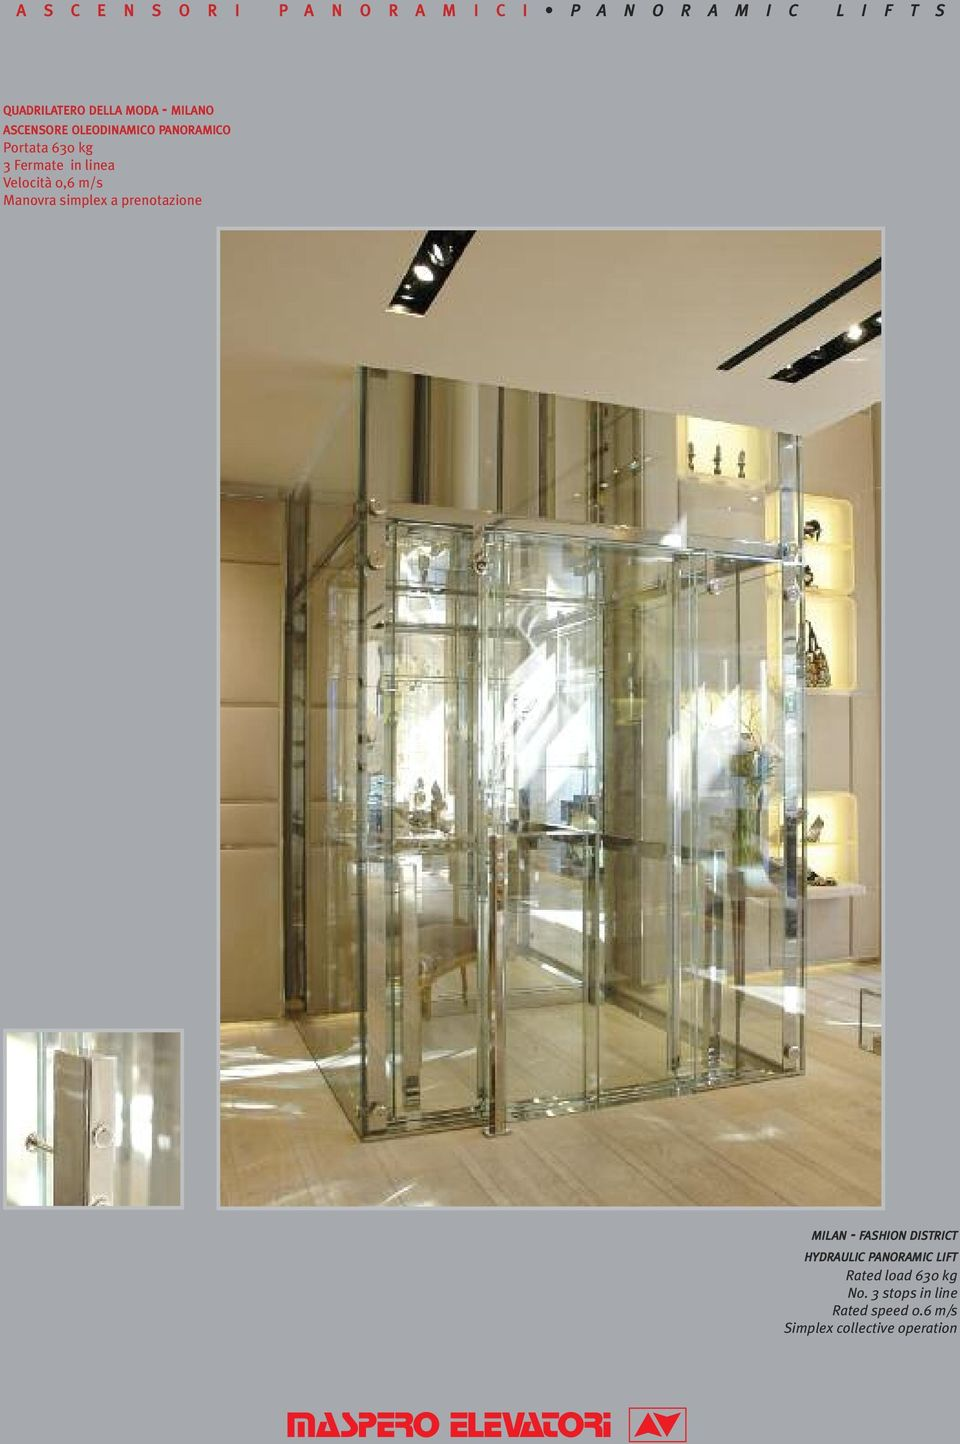 prenotazione MILAN - FASHION DISTRICT HYDRAULIC PANORAMIC LIFT Rated